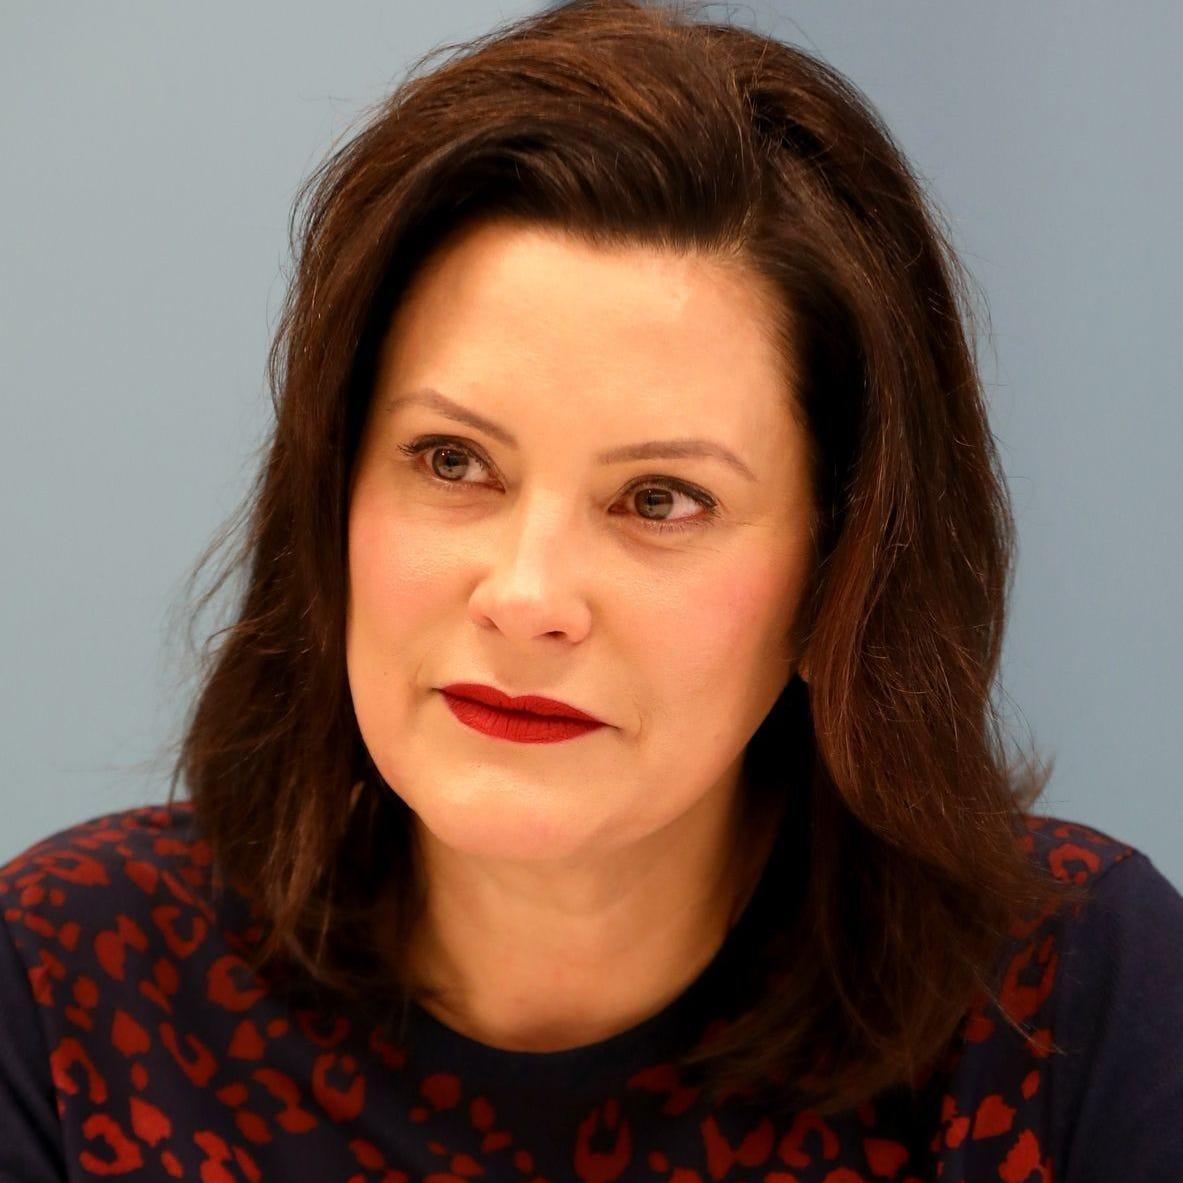 Gov. Gretchen Whitmer signs bill to specify who can serve eviction notices